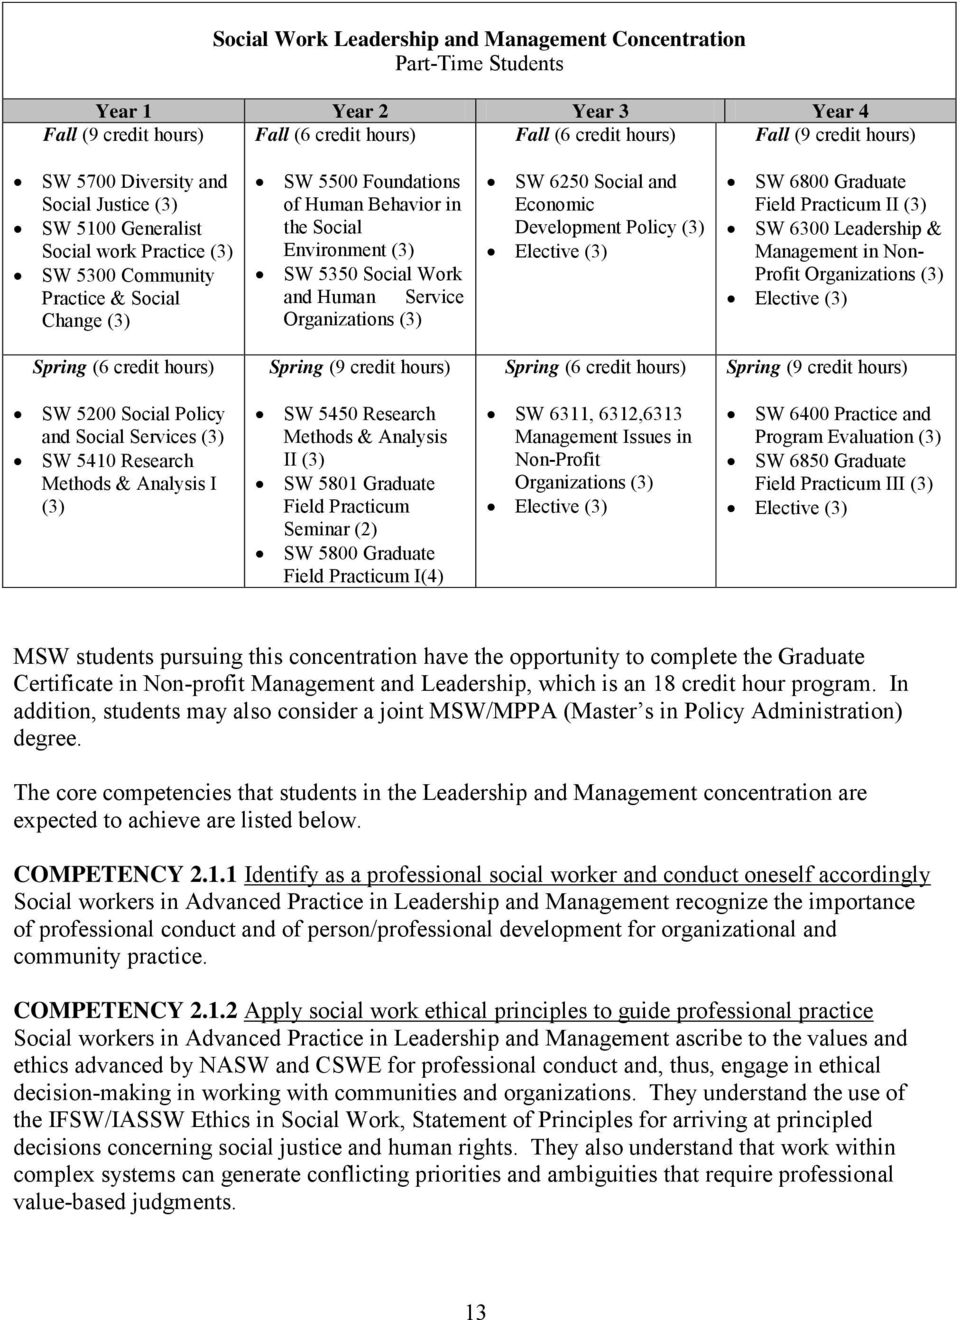 Social Work and Human Service Organizations (3) SW 6250 Social and Economic Development Policy (3) Elective (3) SW 6800 Graduate Field Practicum II (3) SW 6300 Leadership & Management in Non- Profit